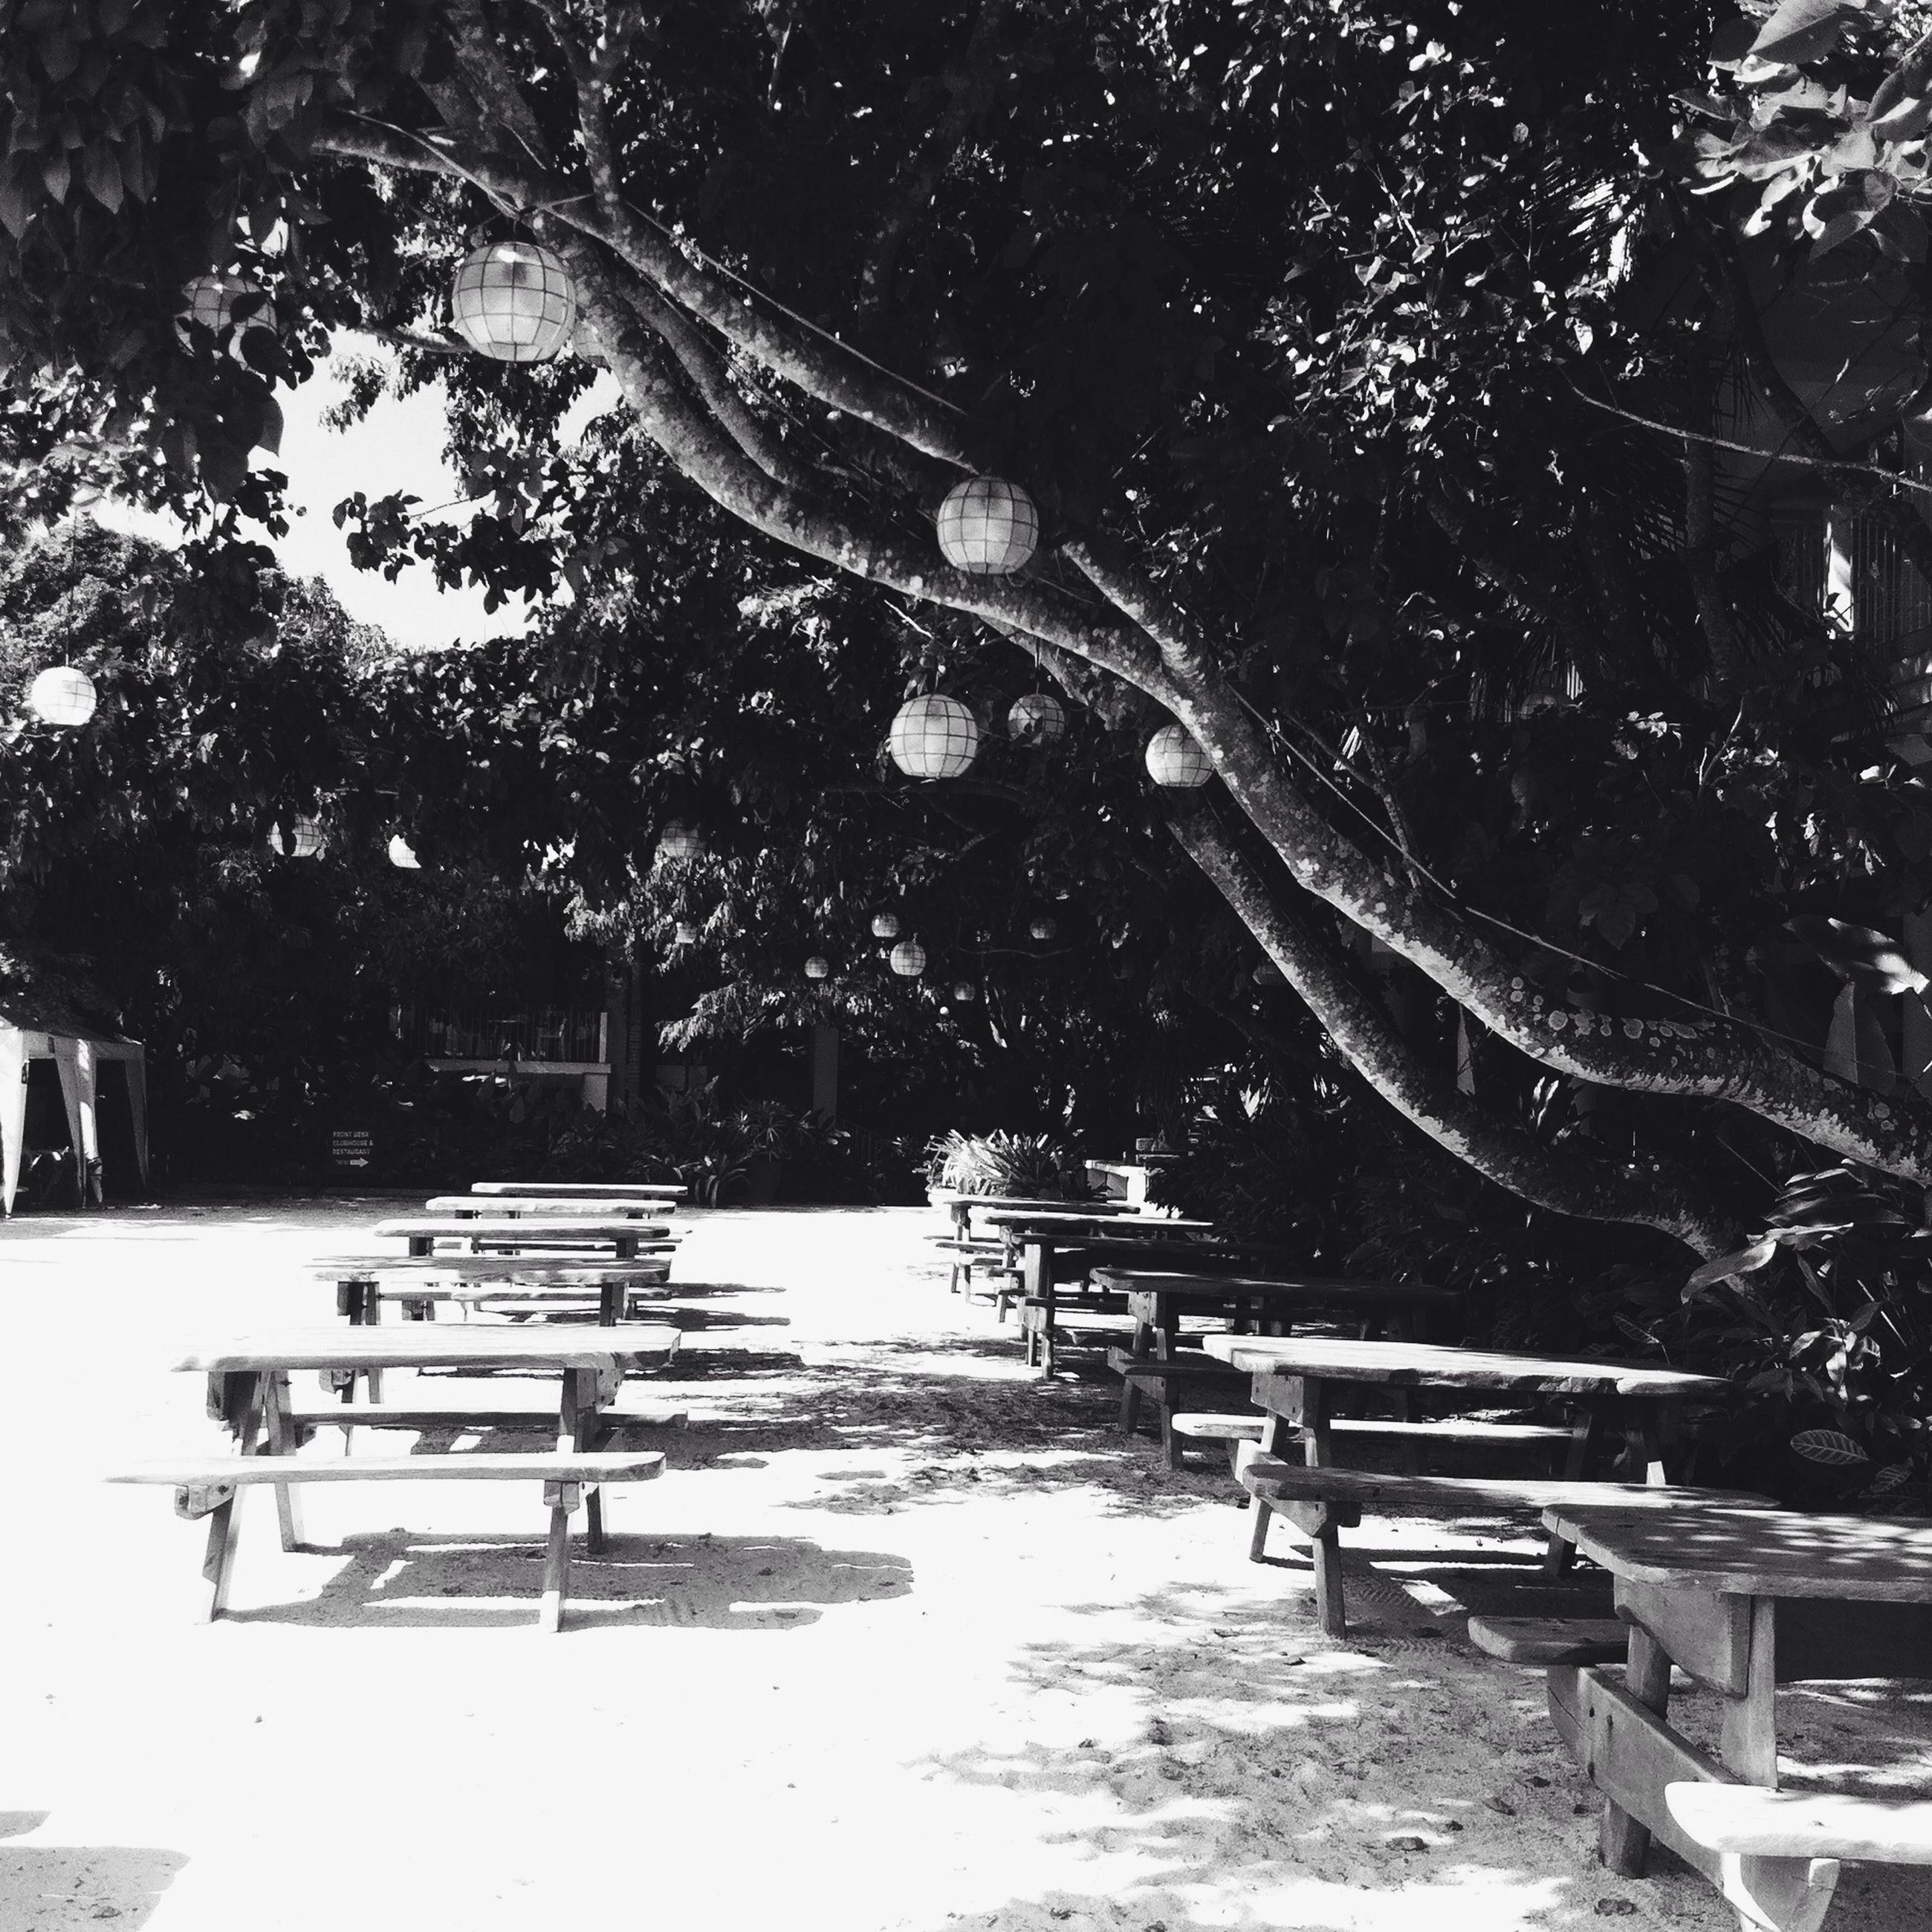 tree, bench, empty, chair, absence, seat, tranquility, park bench, park - man made space, tranquil scene, table, nature, sunlight, growth, park, outdoors, day, water, no people, scenics